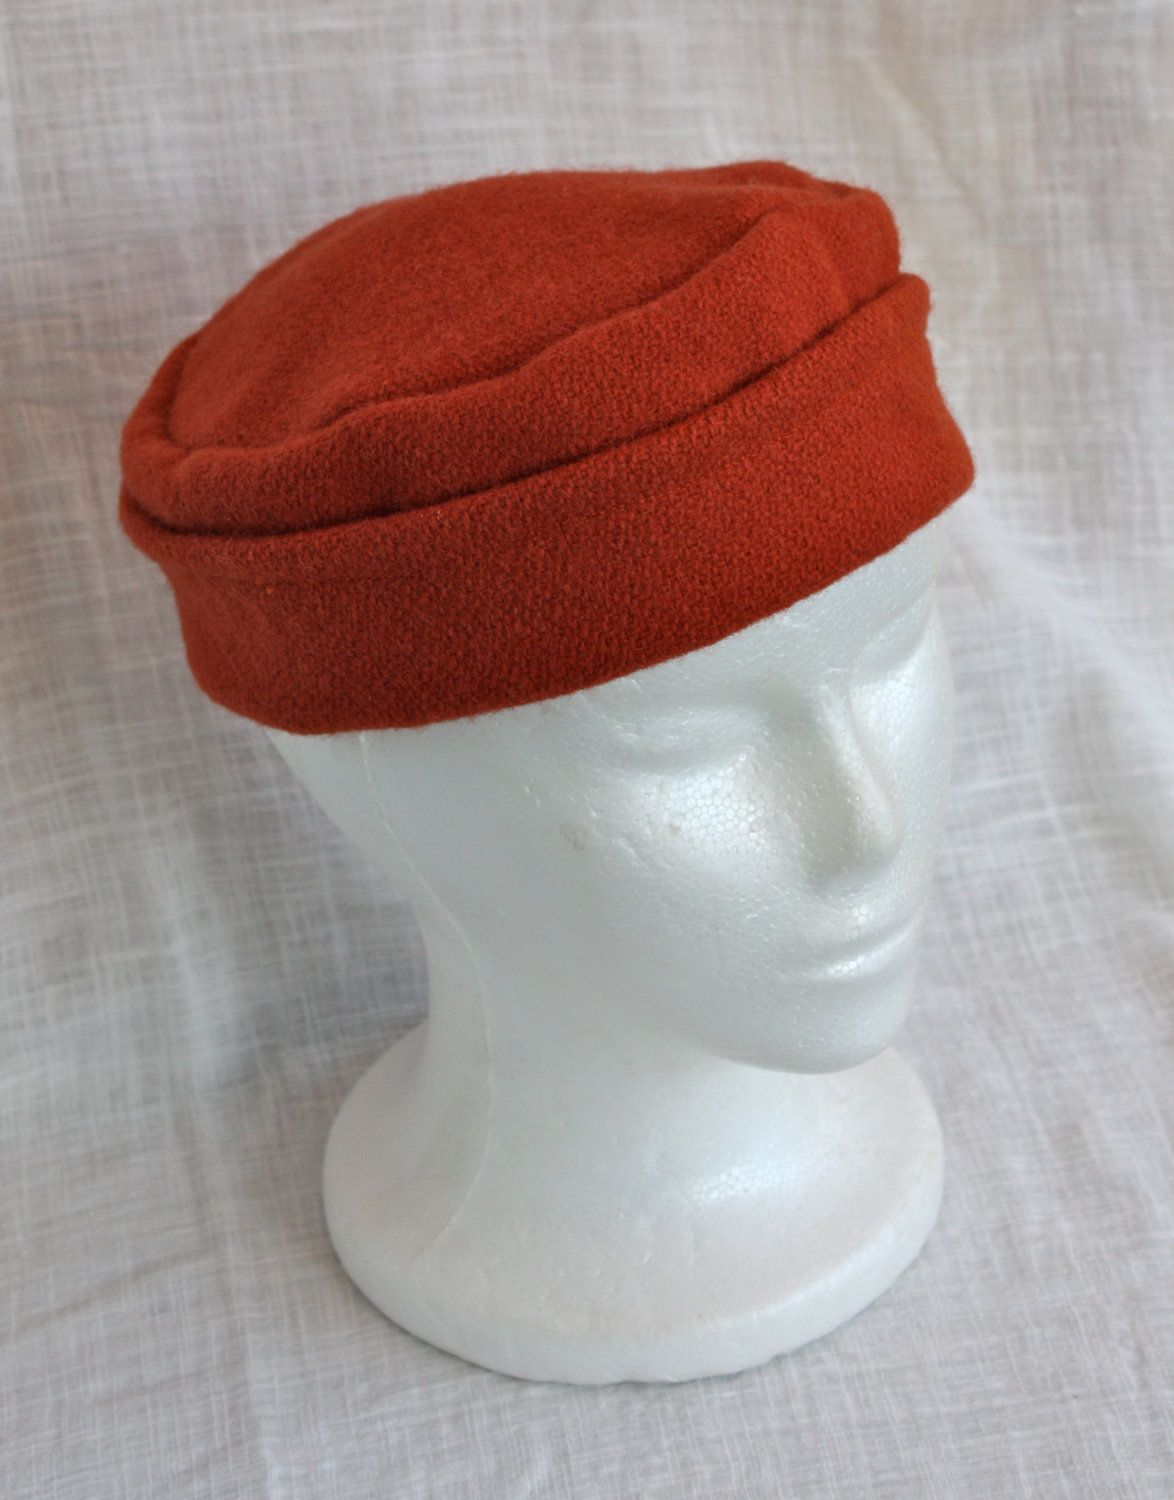 663fd01e1 Hand Sewn Orange Medieval Round Wool Hat | Medieval Hats and ...